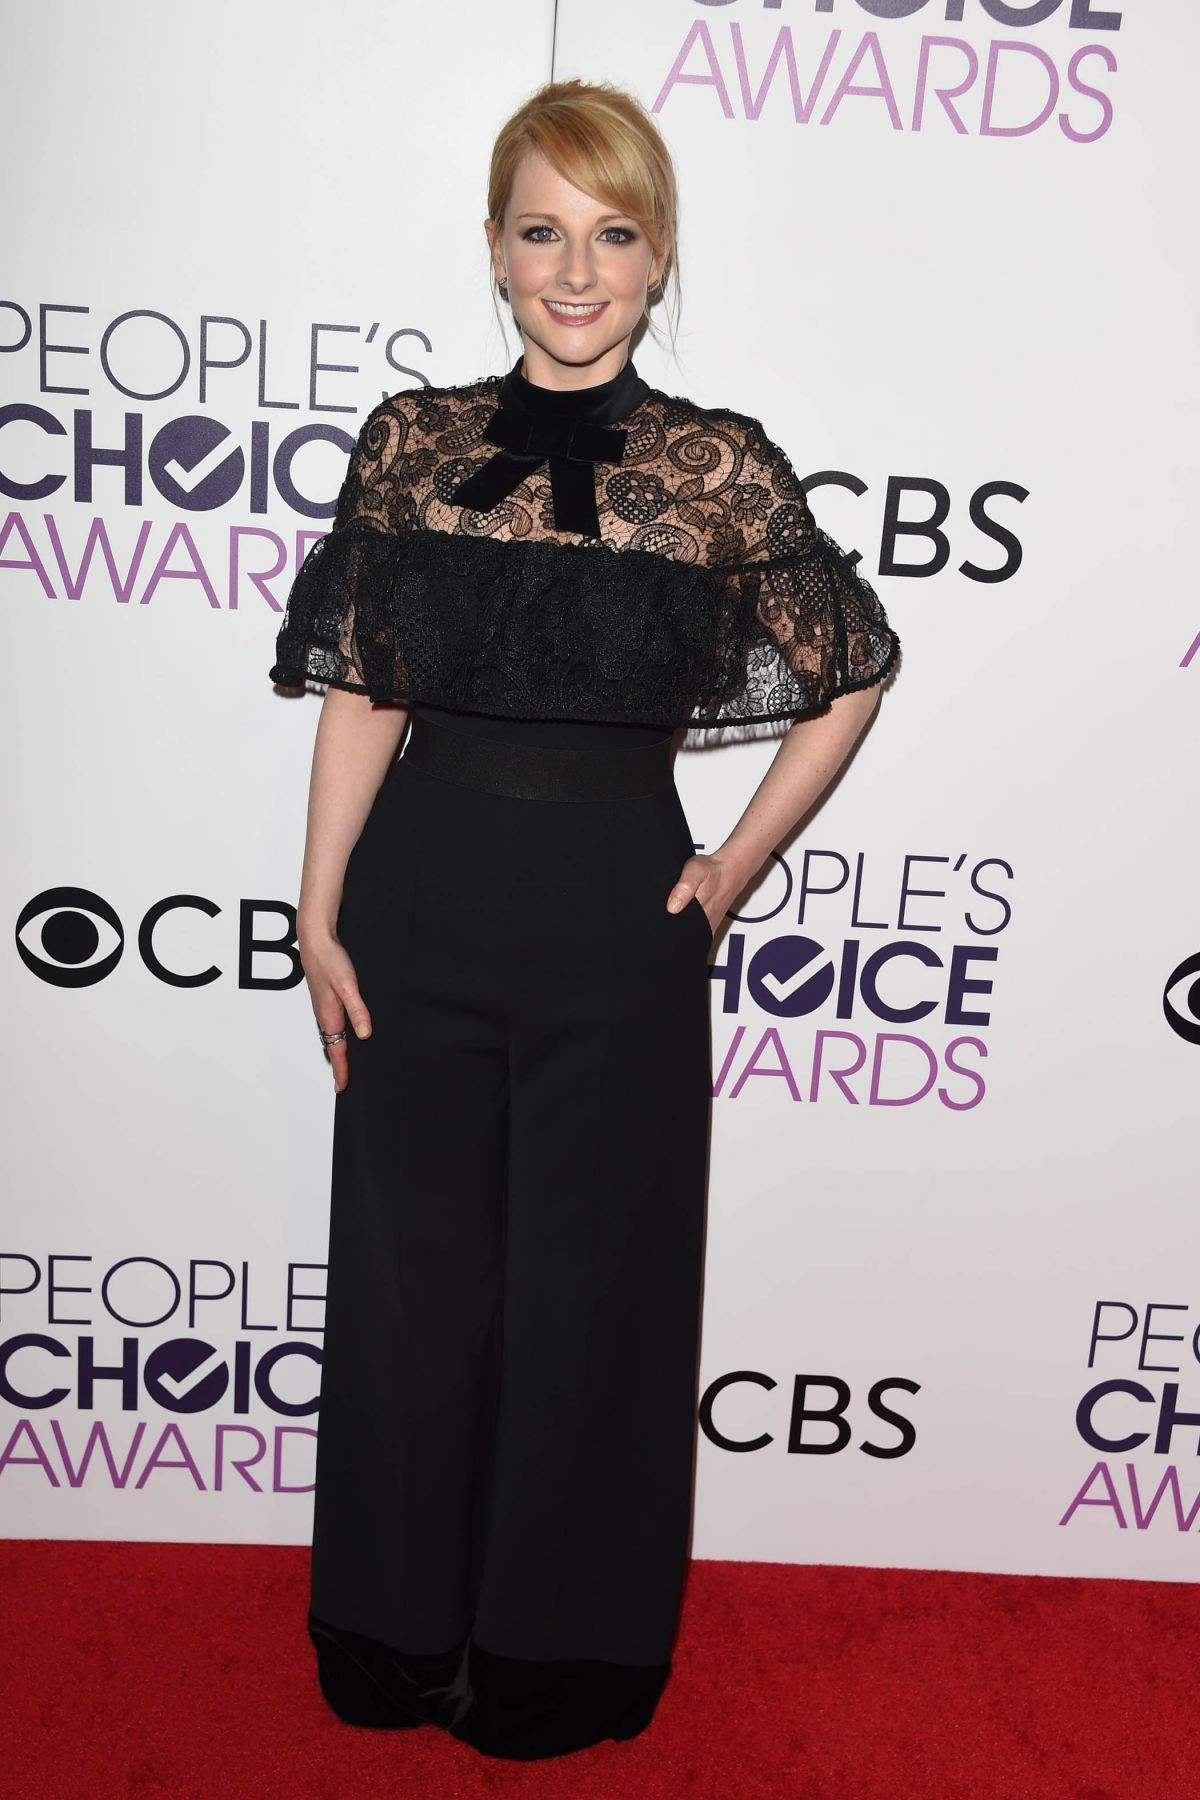 MELISSA RAUCH at 43rd Annual People's Choice Awards in Los Angeles 01/18/2017